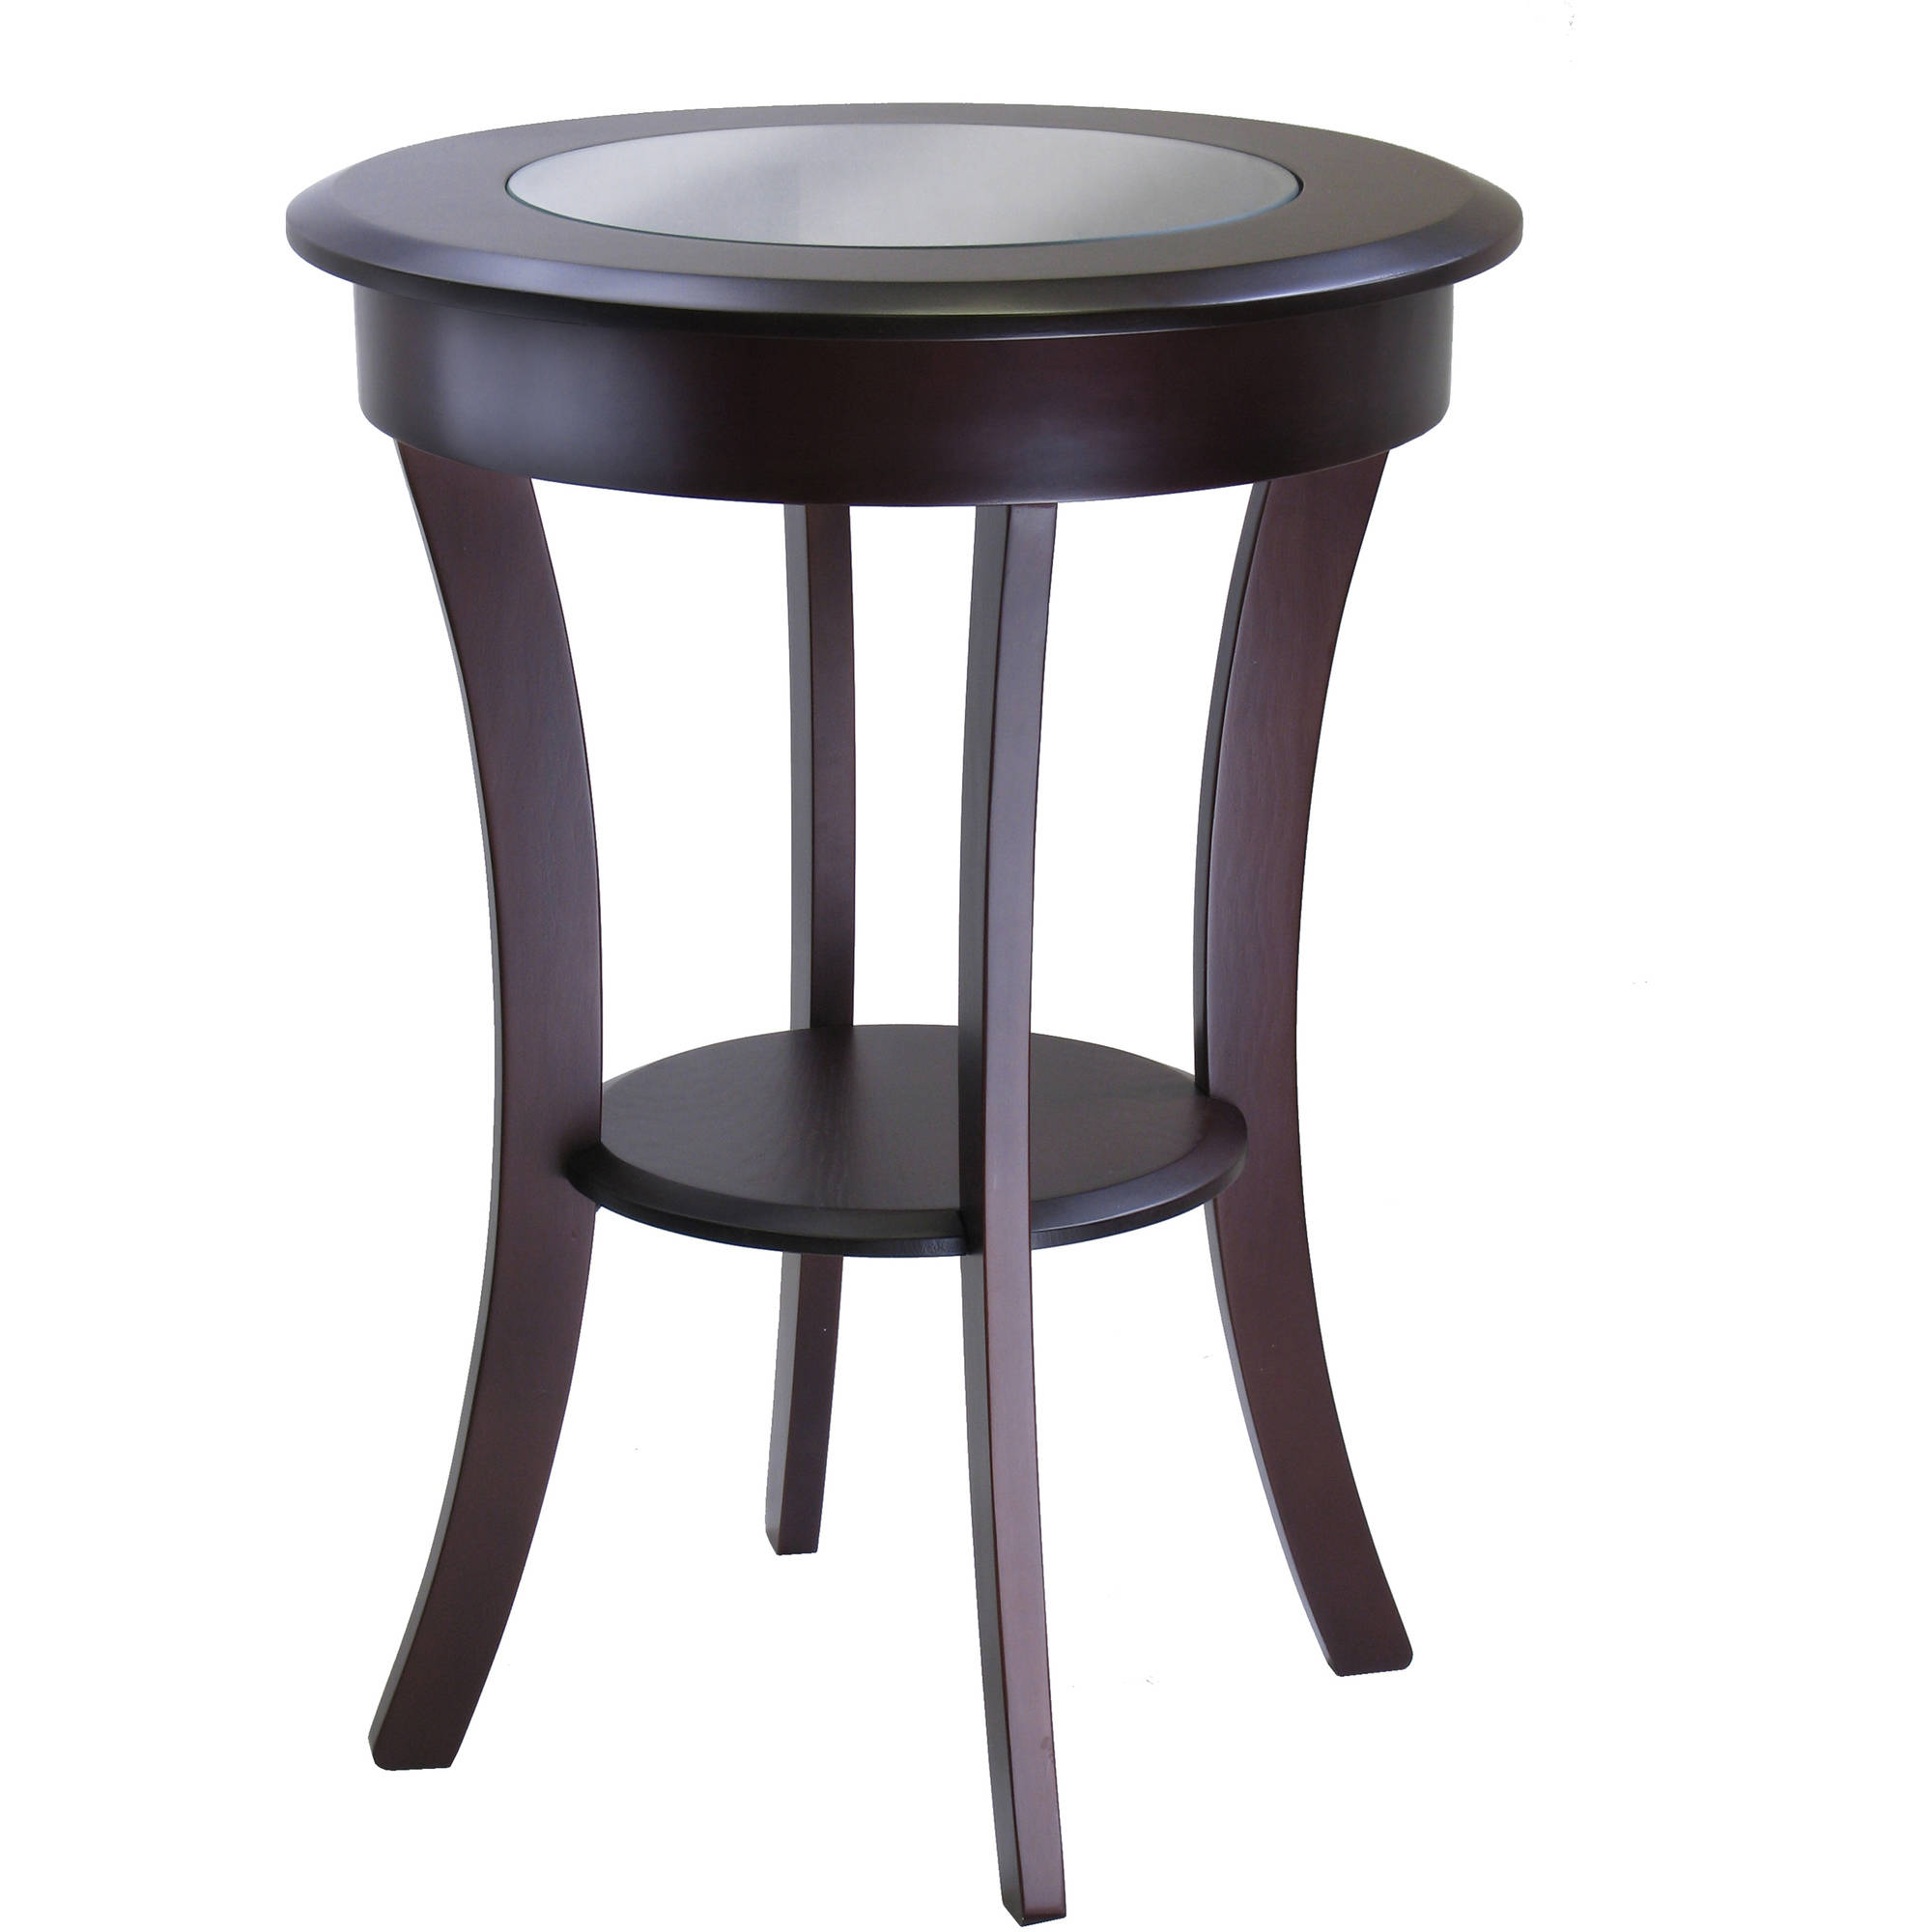 amazing accent side tables round mater nest for wooden glass metal and wood gold small outdoor rustic bedroom gloss table kmart bedside full size top wine rack large square patio